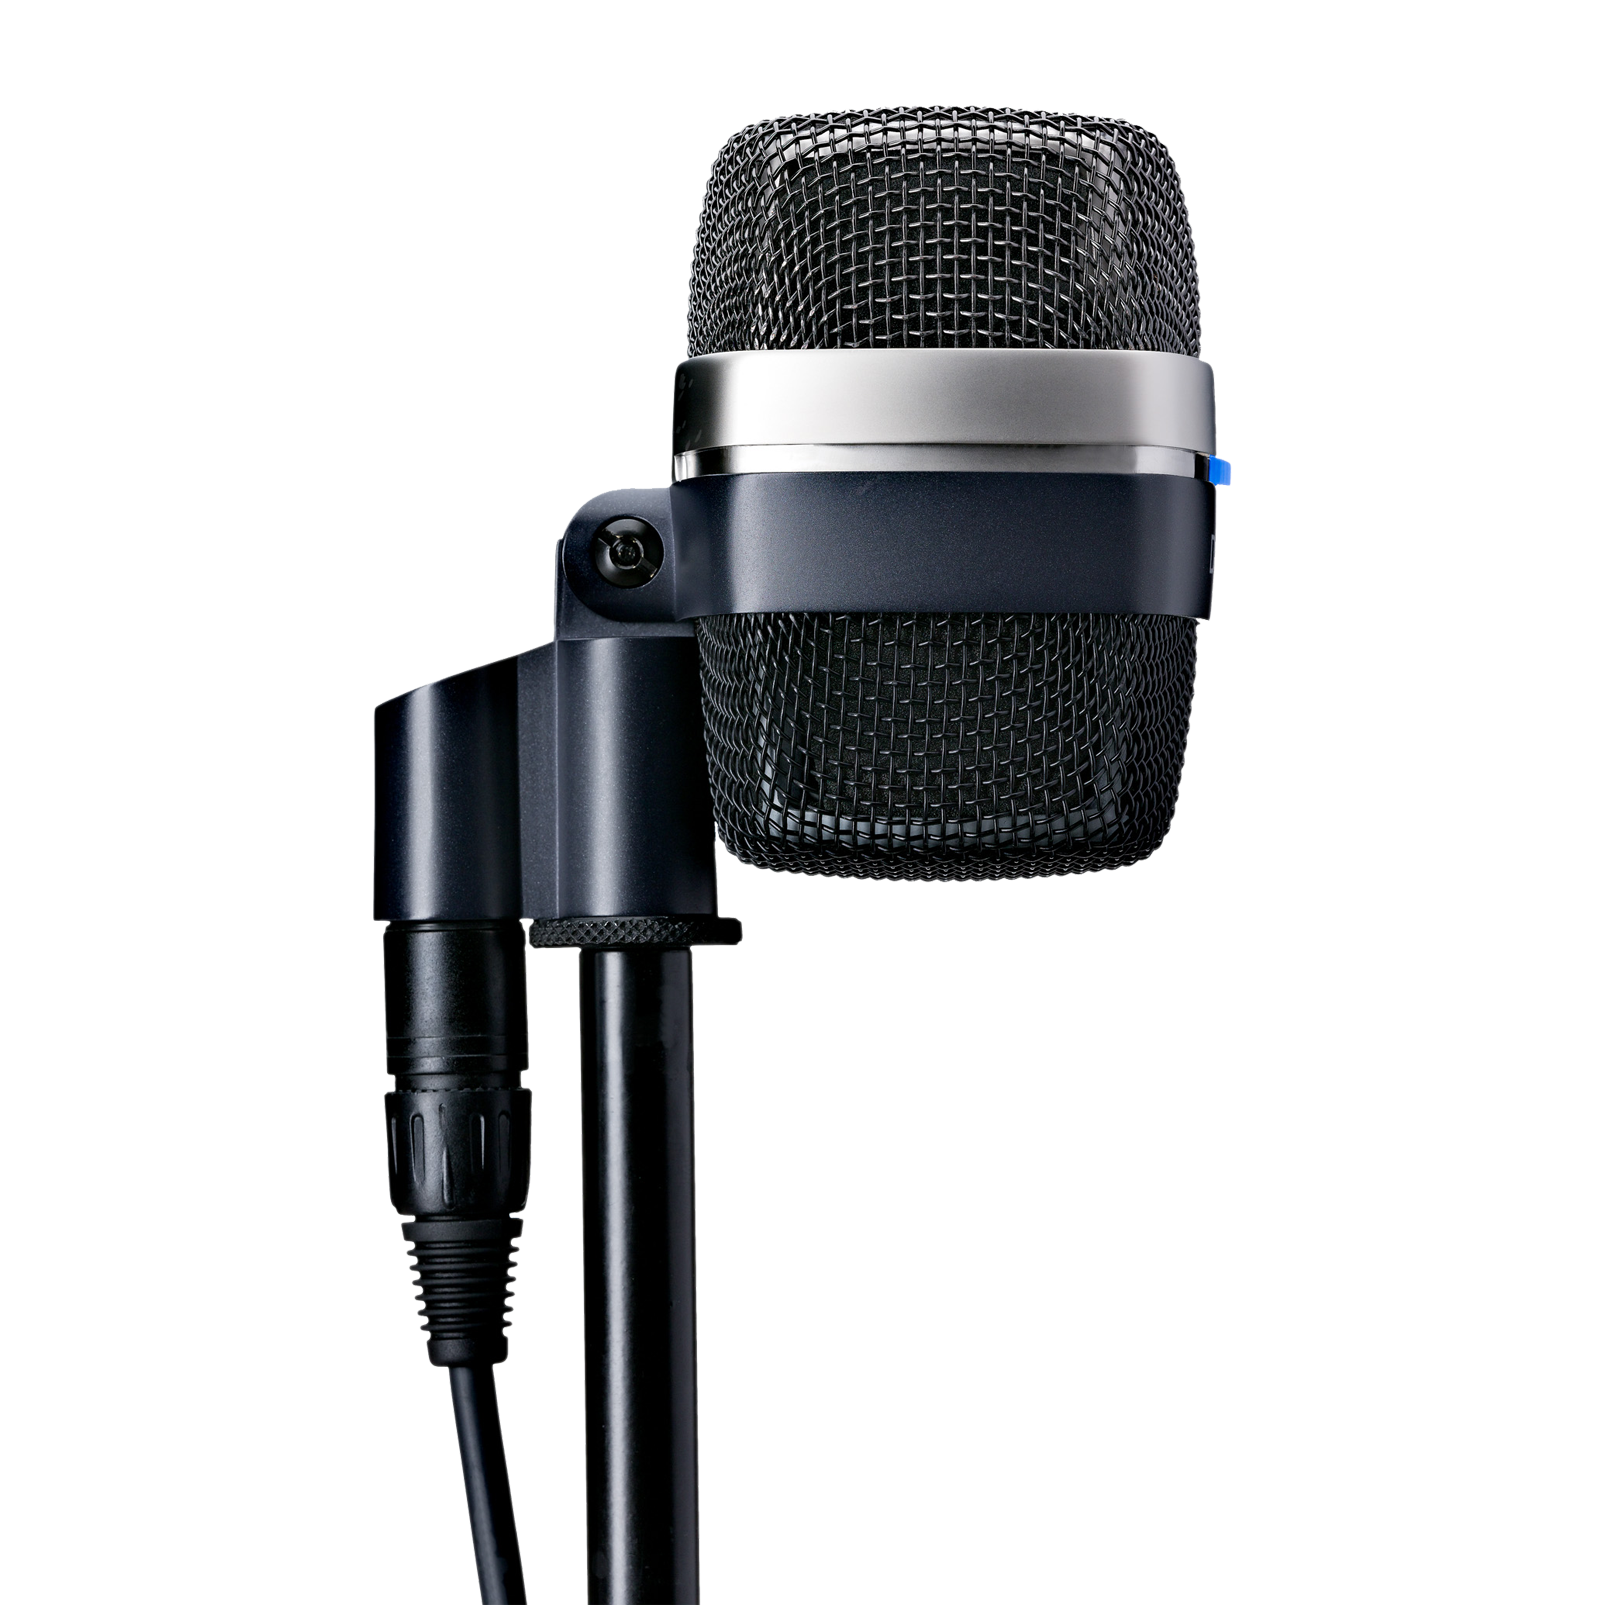 D12 VR - Black - Reference large-diaphragm dynamic microphone - Detailshot 2